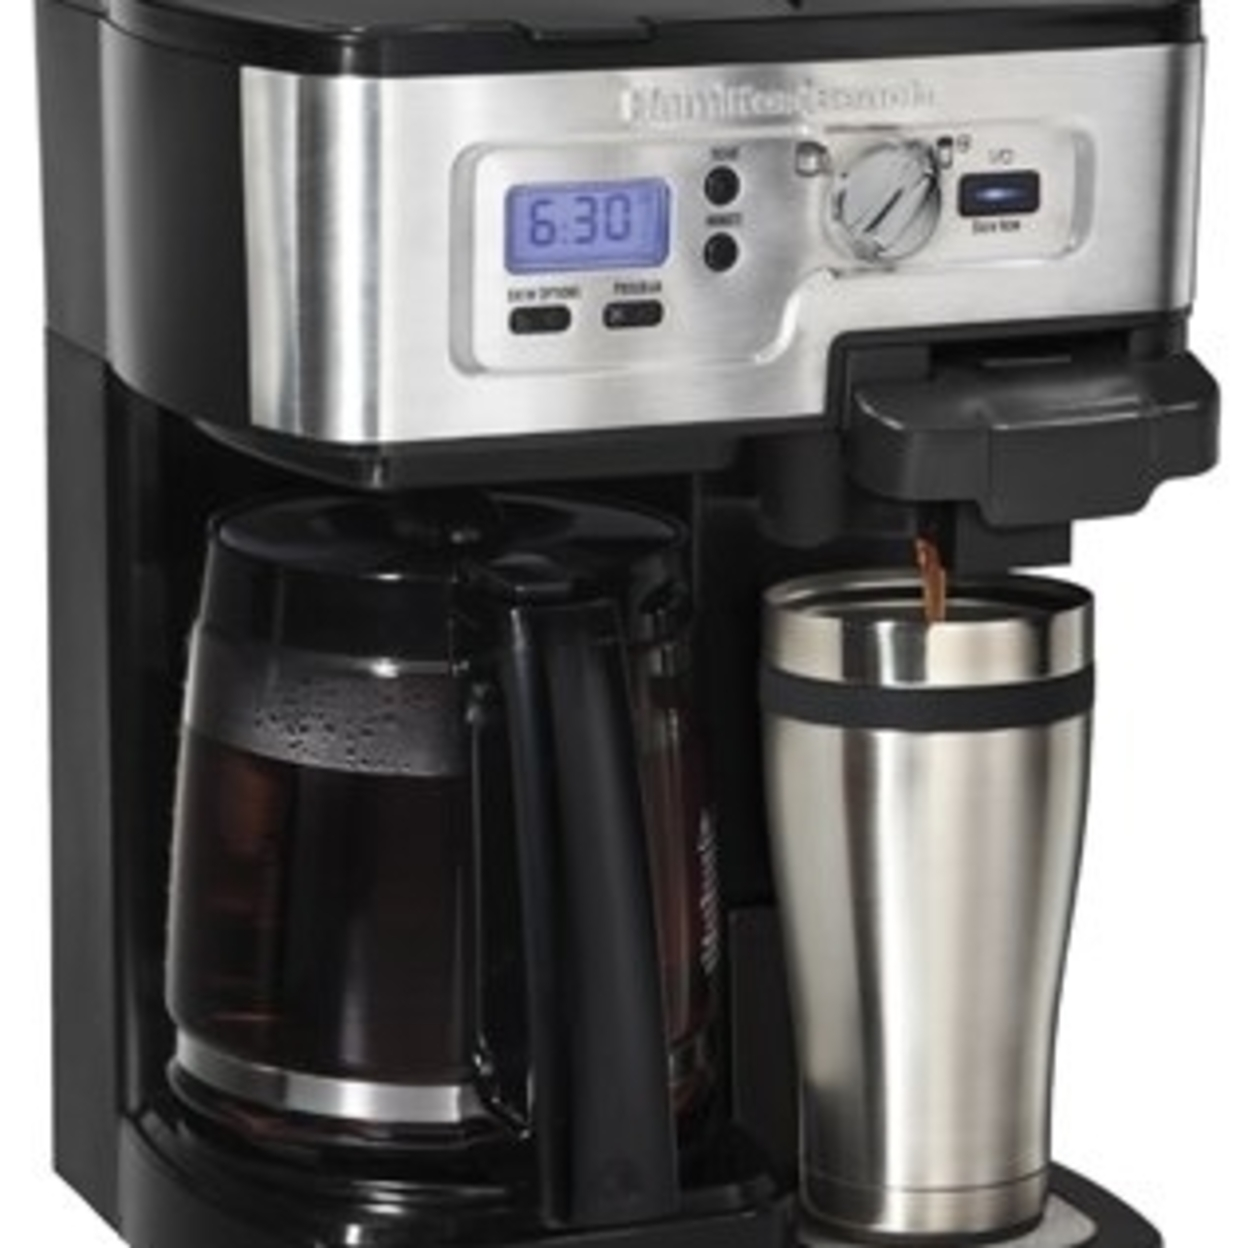 Hamilton Beach 49983 Flex Brew 2 Way Brewer 5a404509e224613c441aeadb